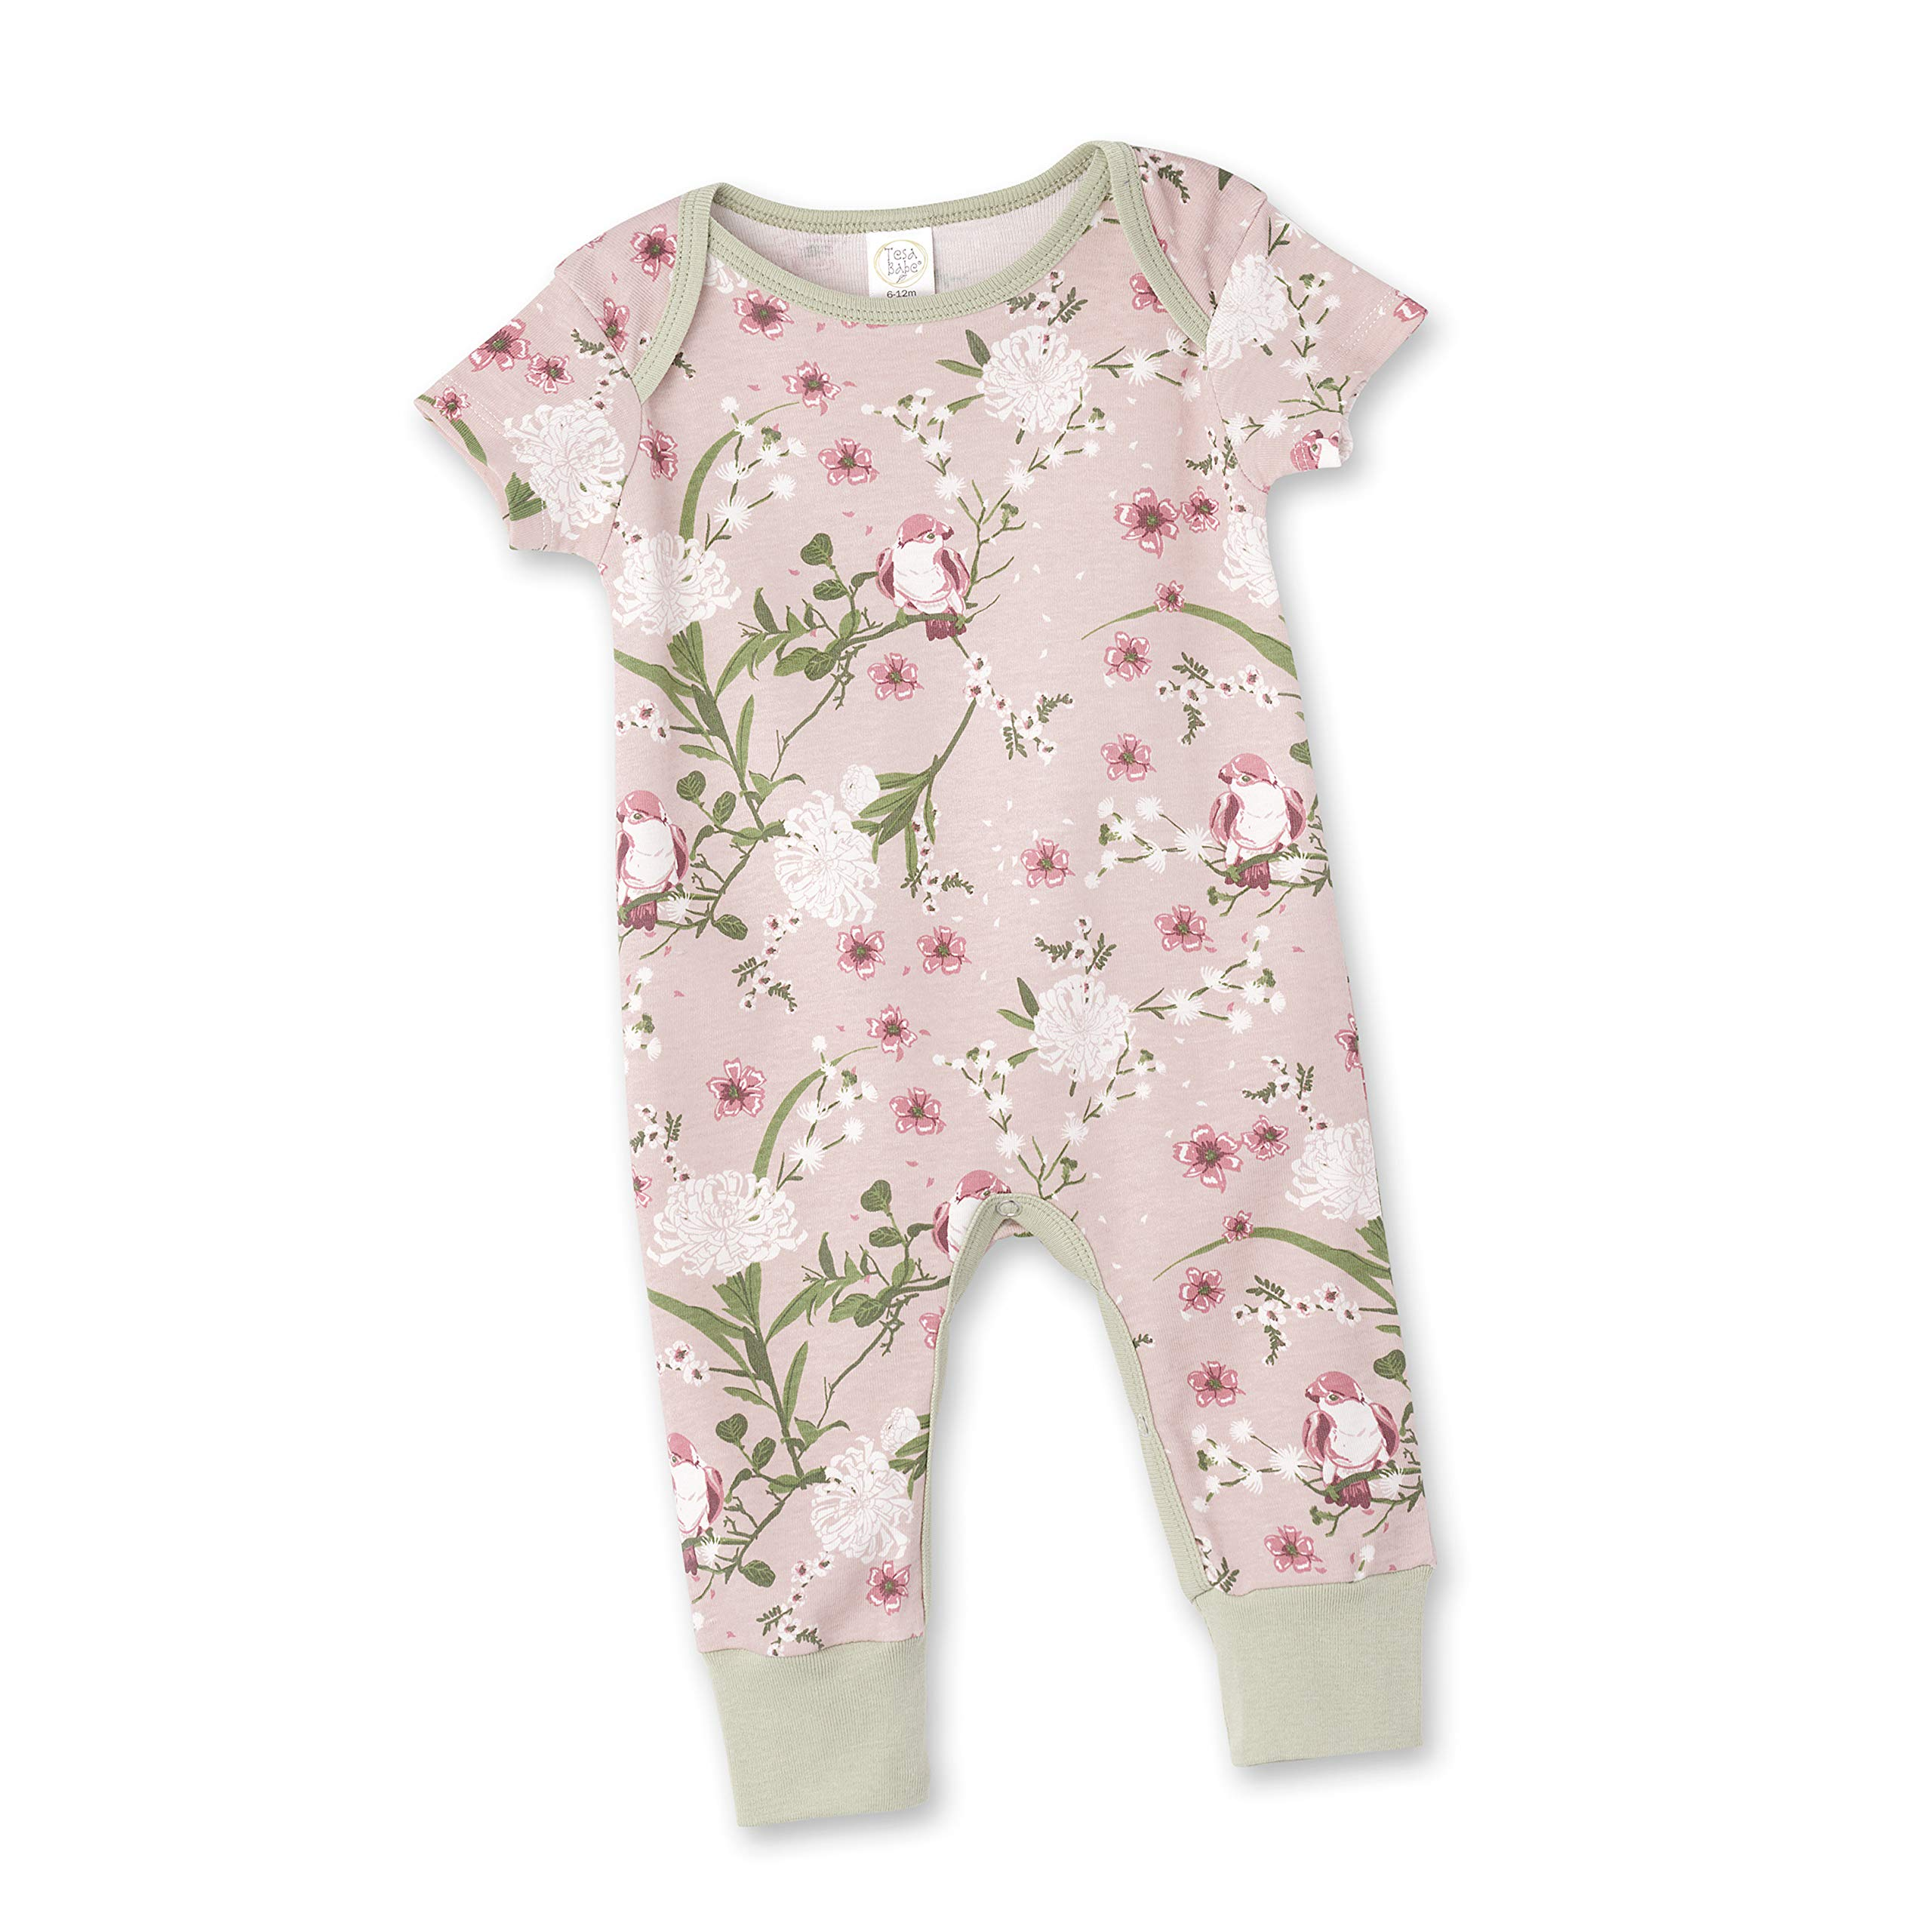 Tesa Babe Baby Girl Romper Gift Set for Newborn Baby Girls to Toddlers in Floral with Matching Headwear Multi